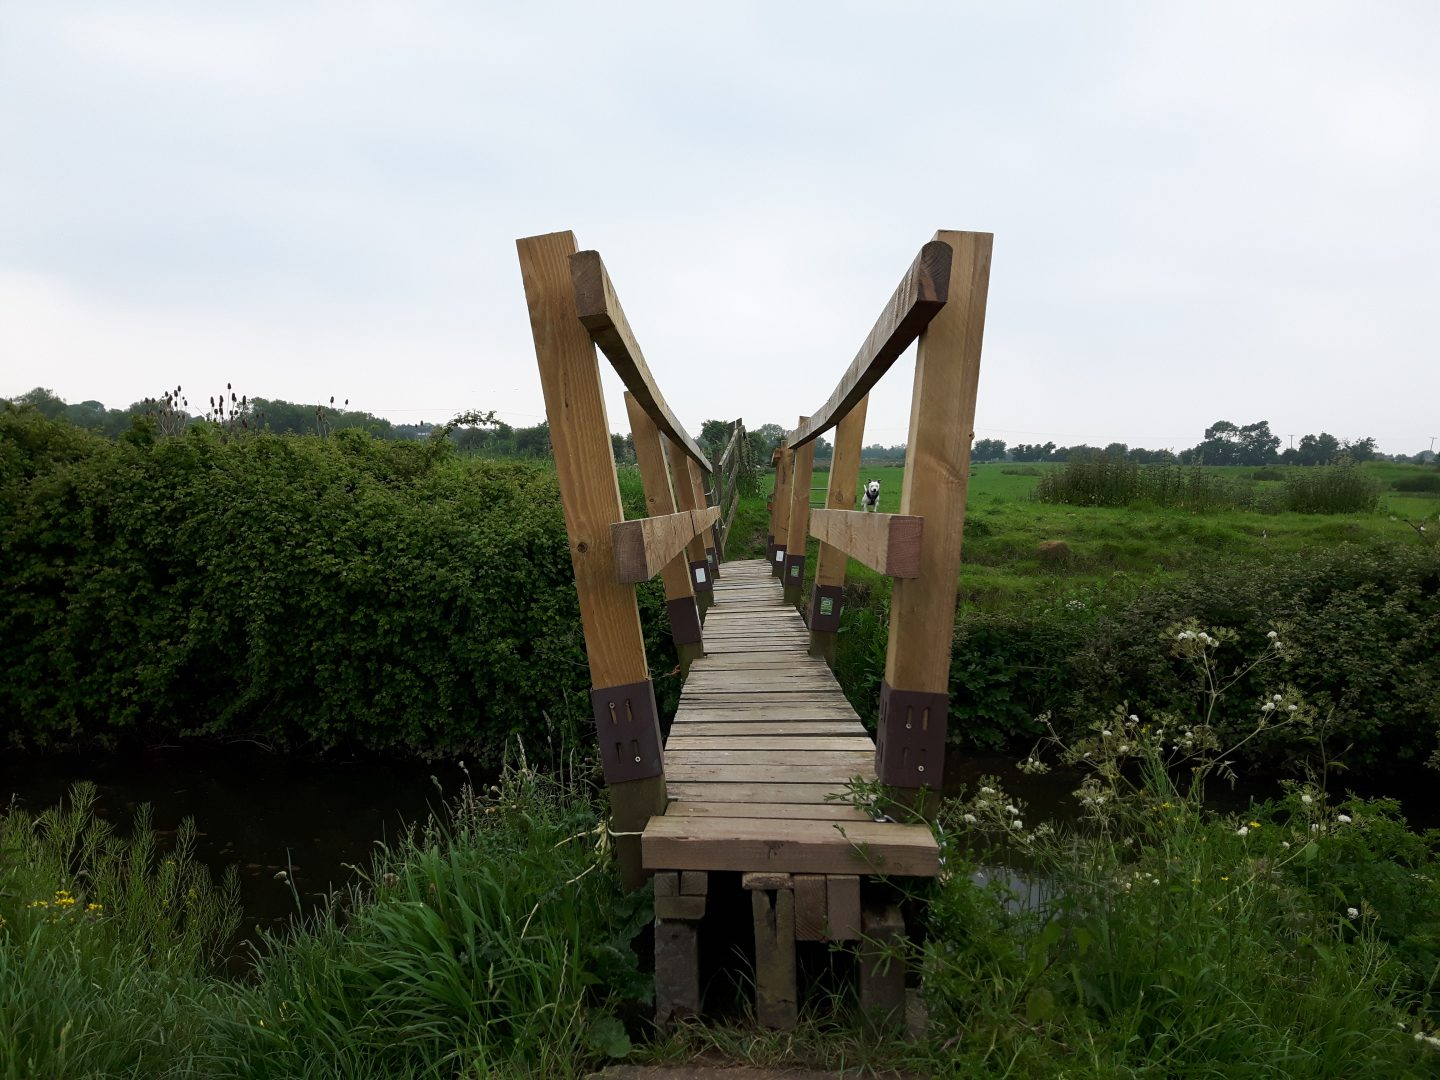 Narrow and tall-sided, wooden bridge over a river with greenery, banks and fields surrounding it.